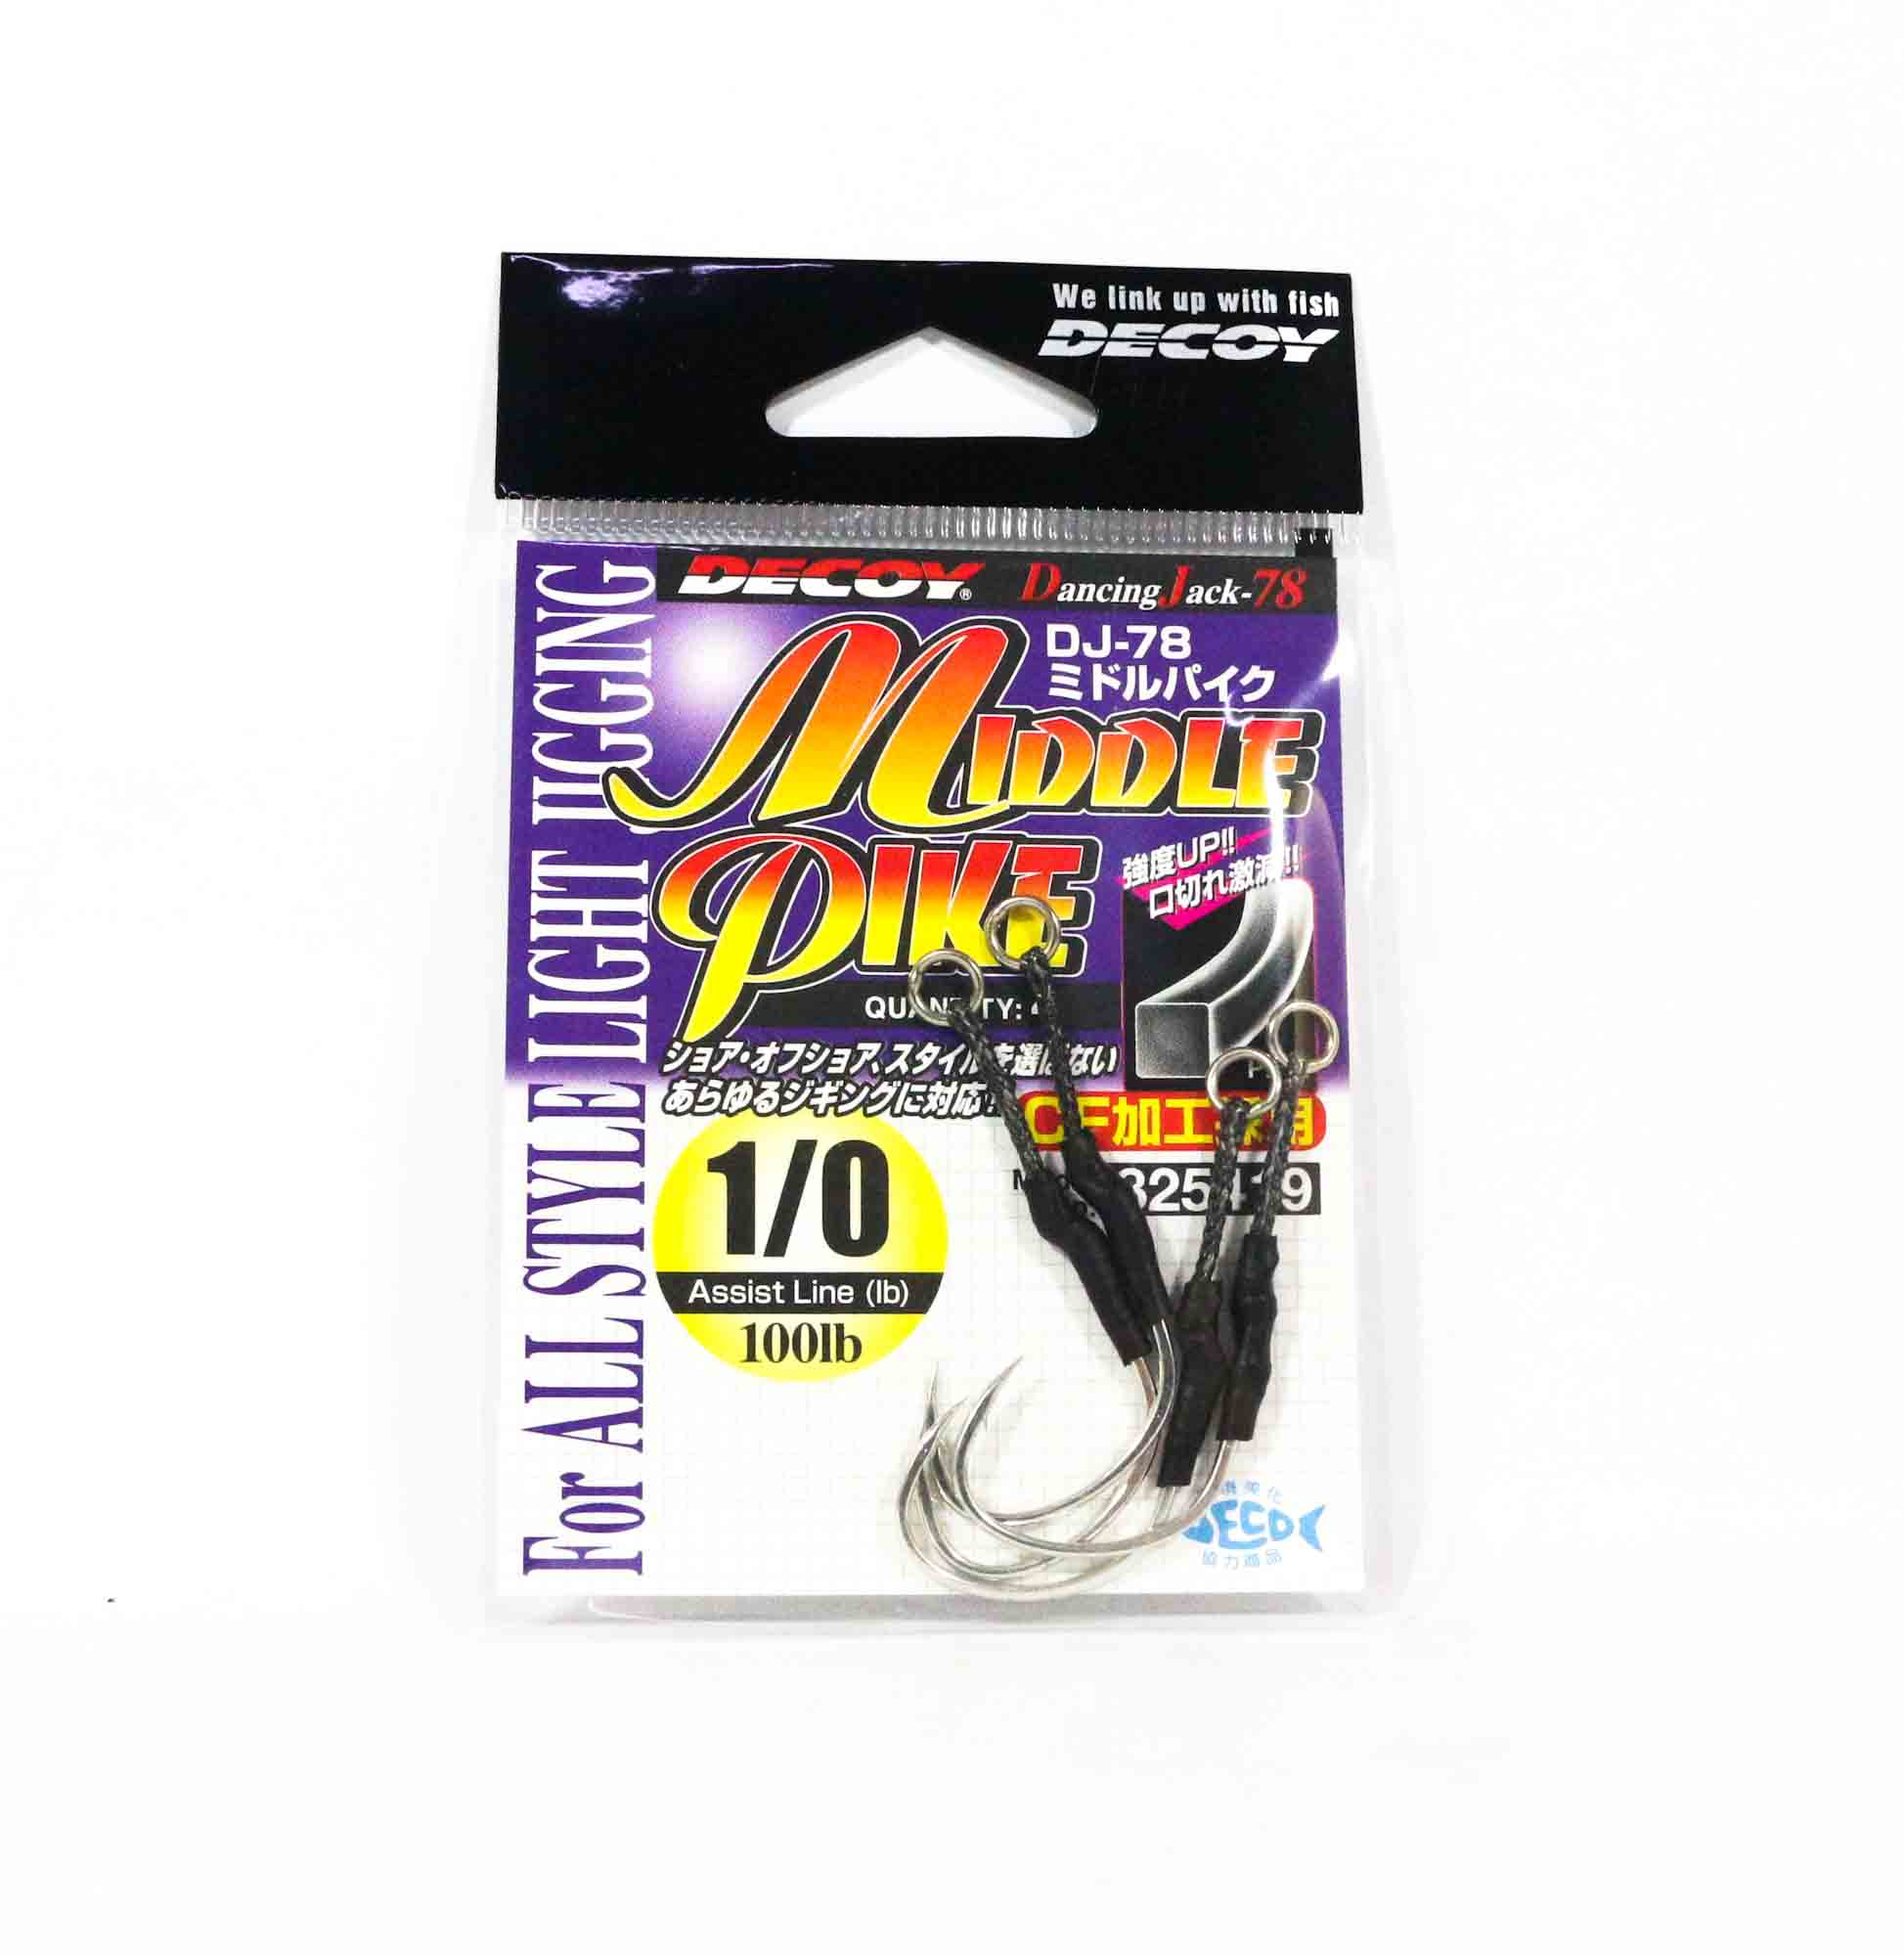 Decoy DJ-78 Middle Pike Assist Hooks Size 1/0 (5419)